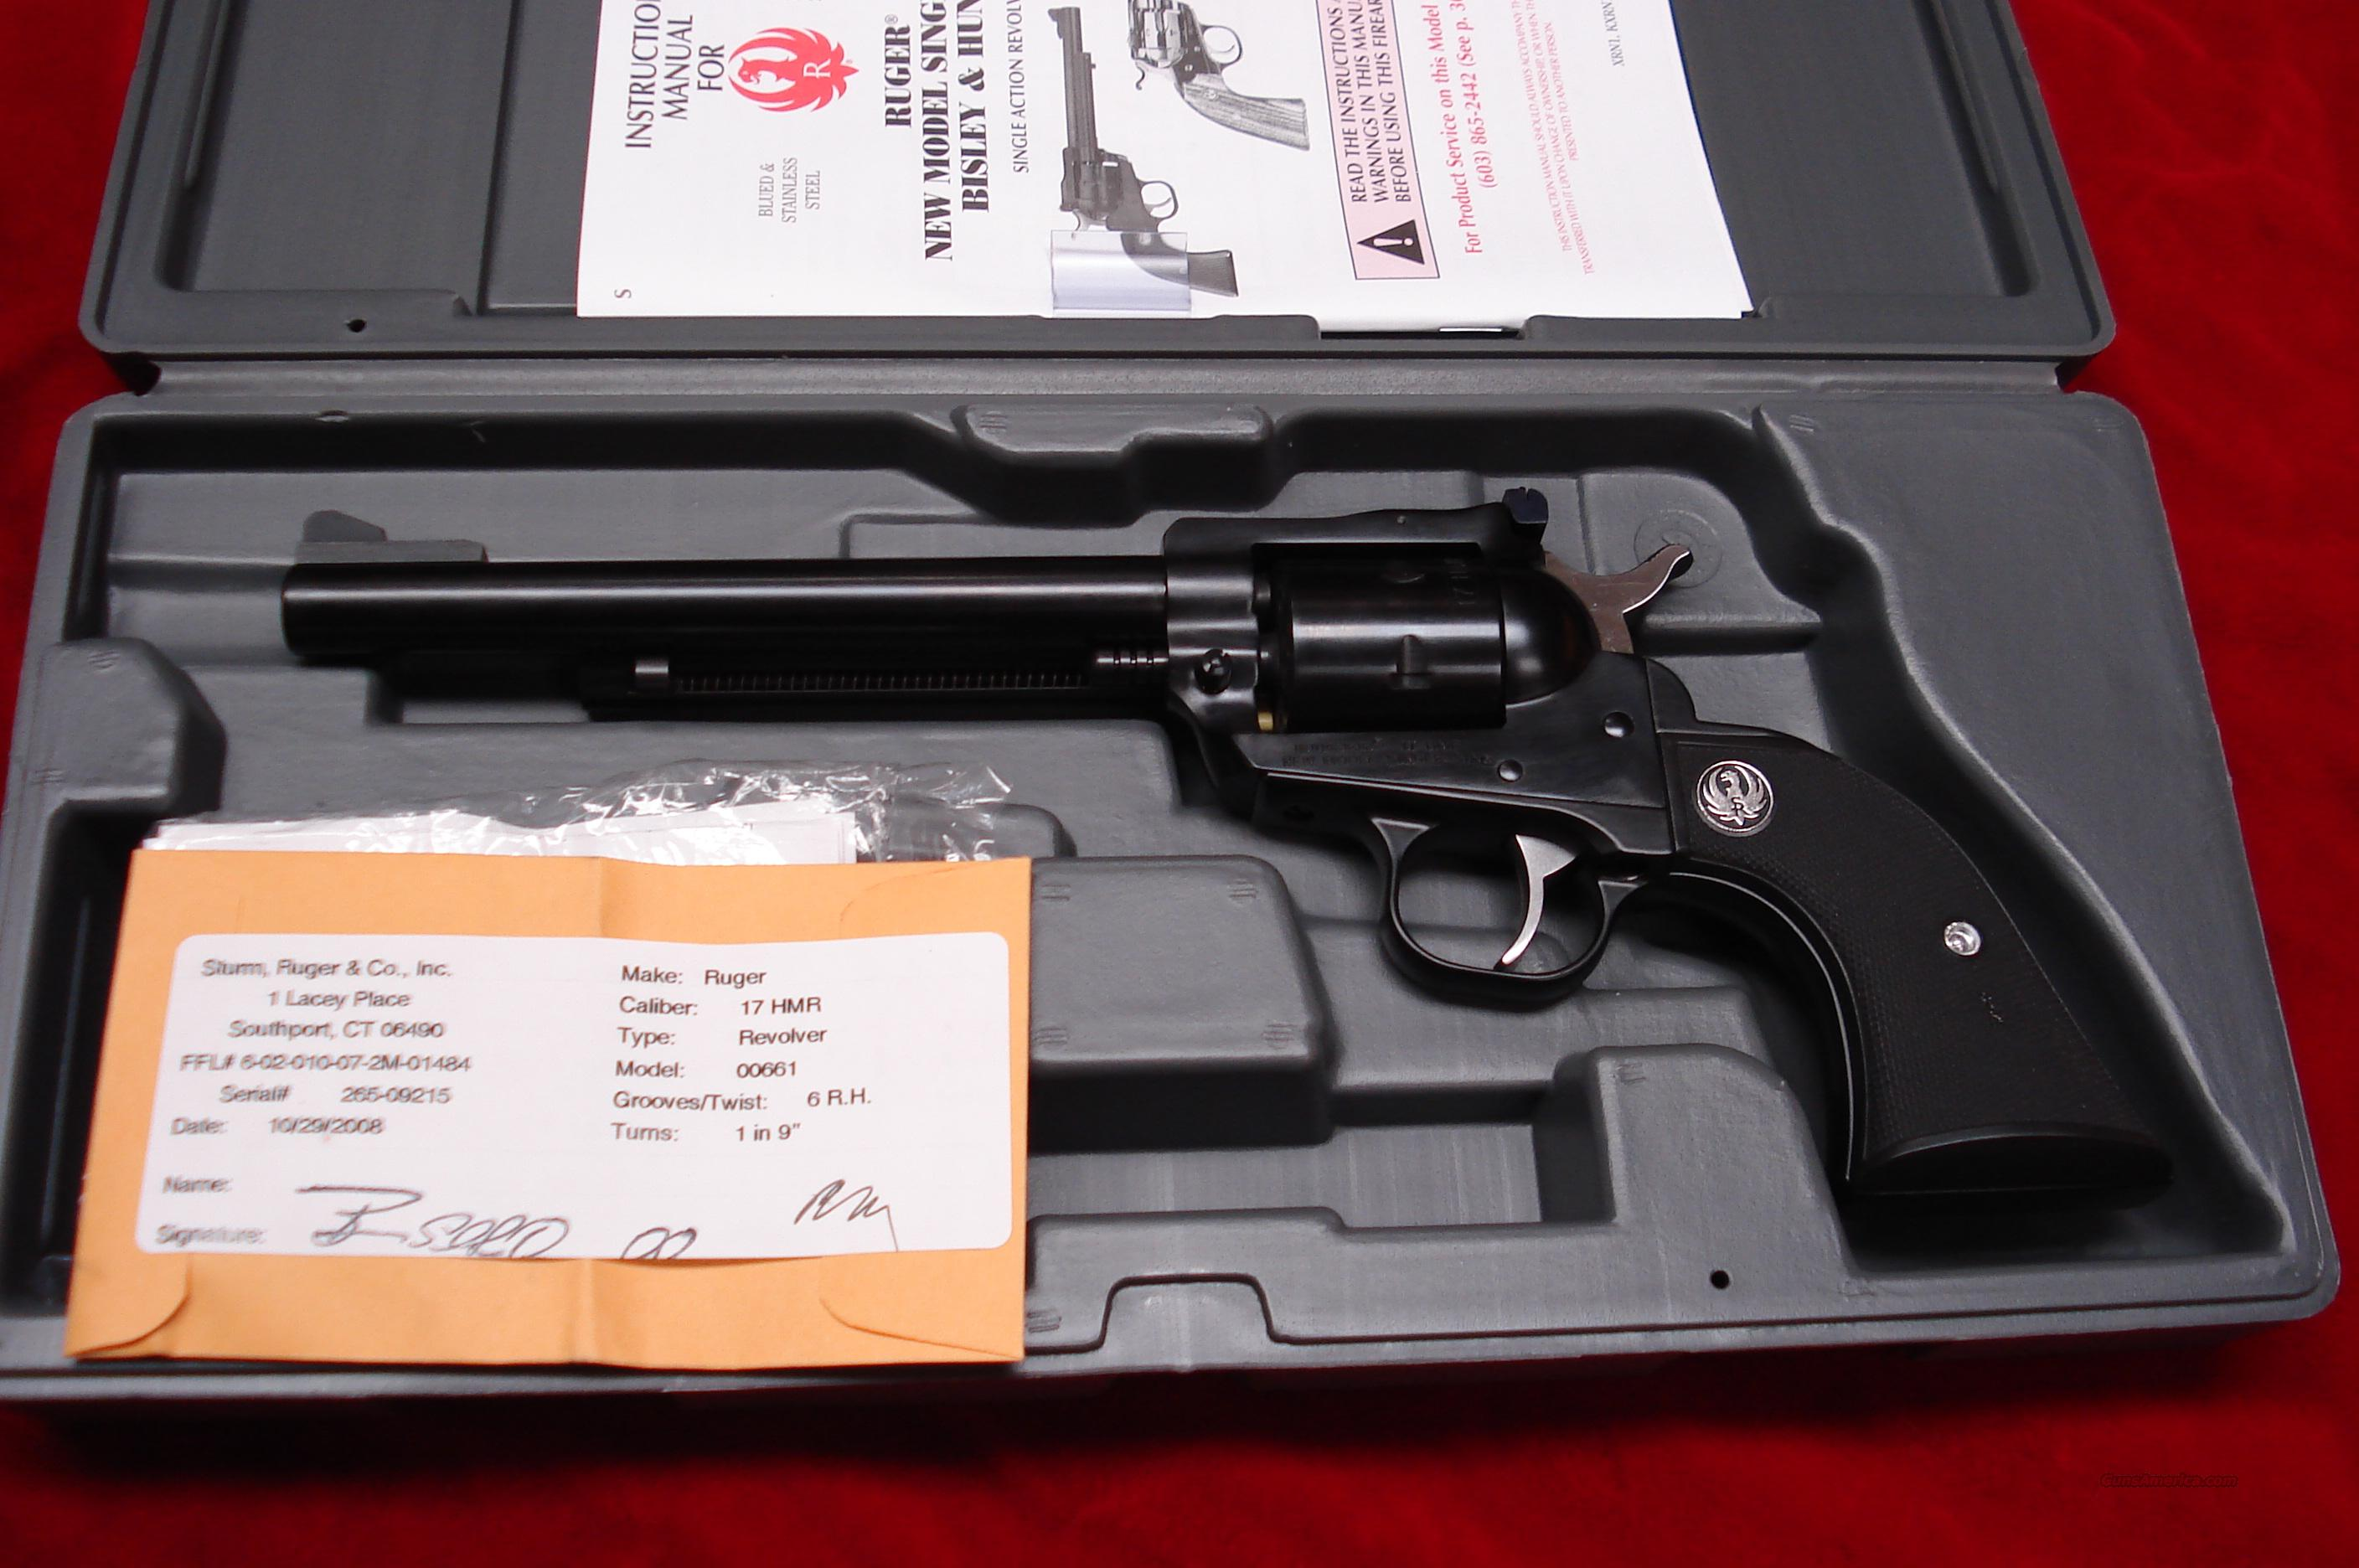 "RUGER .17HMR SINGLE-SIX 6.5""  NEW  Guns > Pistols > Ruger Single Action Revolvers > Single Six Type"